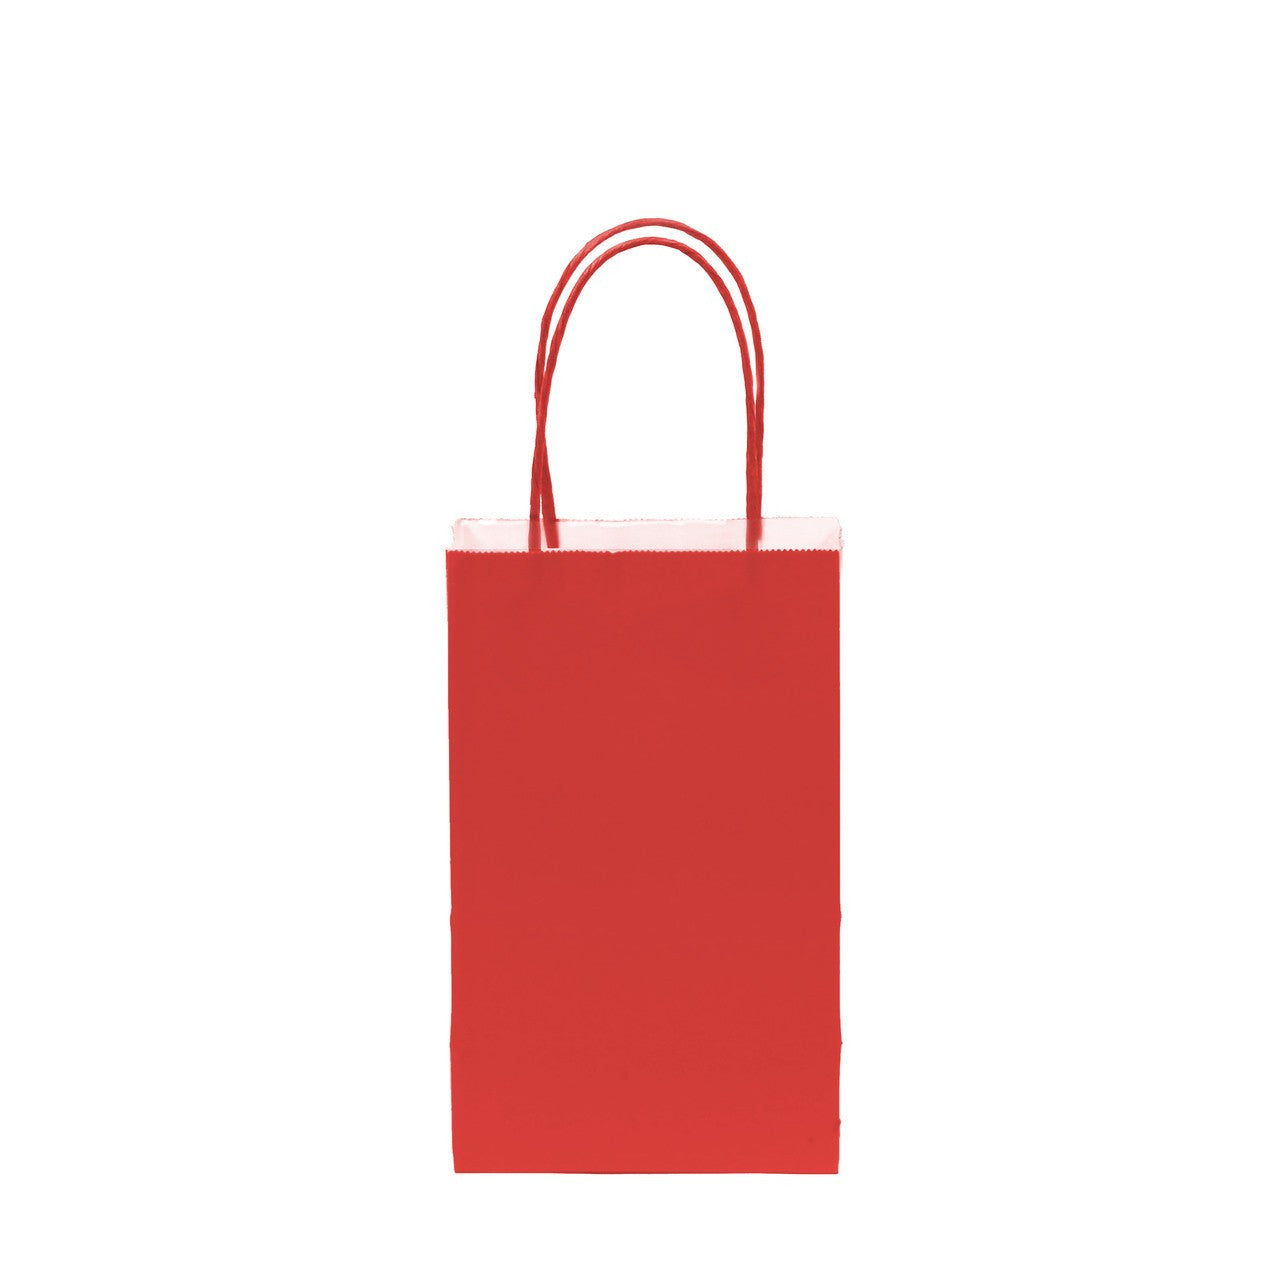 "12 pcs- Solid Red Color Kraft Bag 5"" x 8.25"""